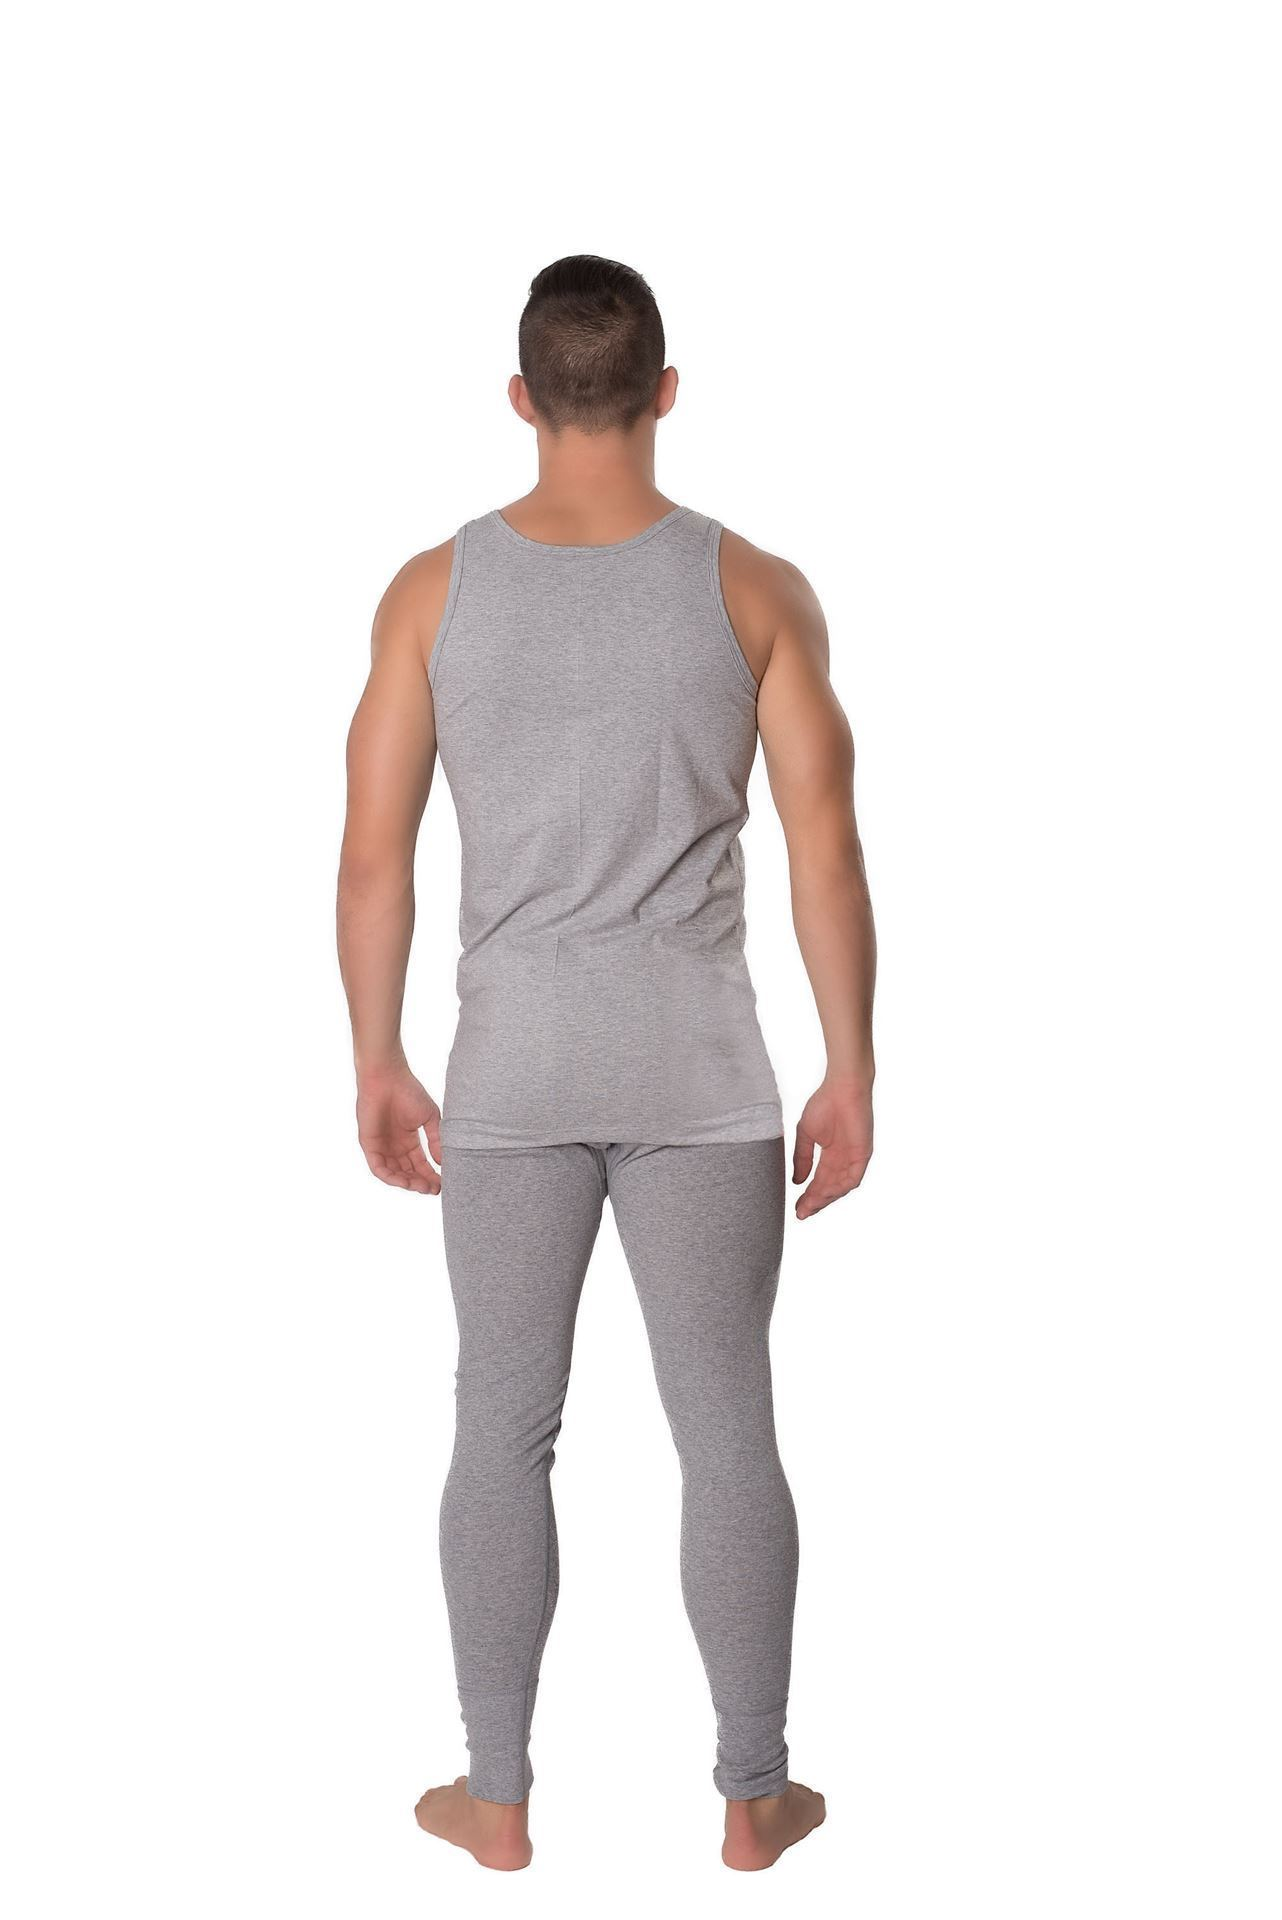 Picture of Men's undershirt